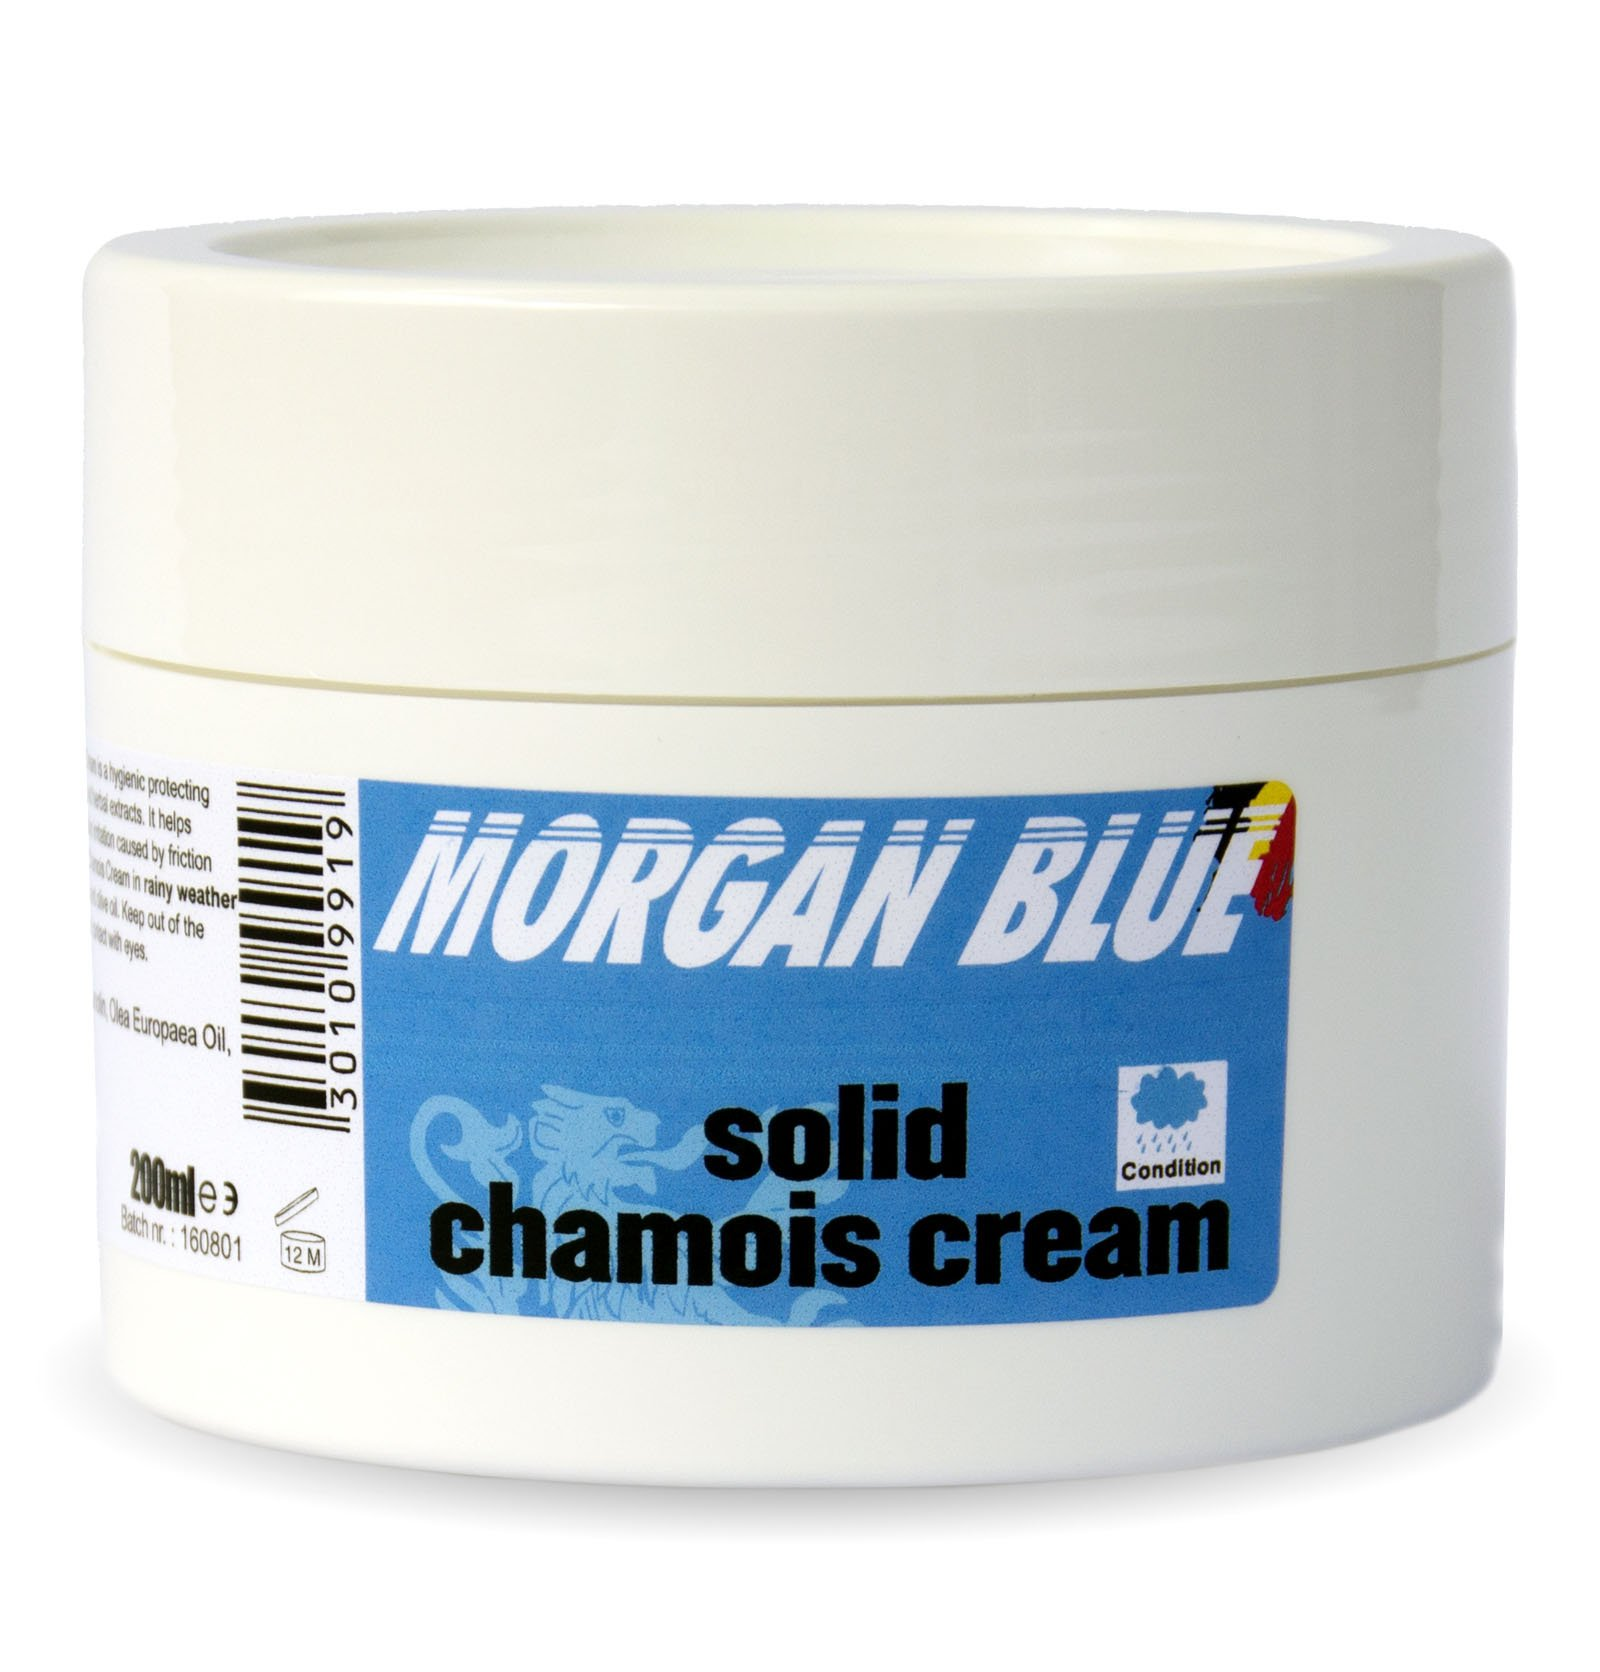 Morgan Blue solid chamois cream 200 ml | Personlig pleje